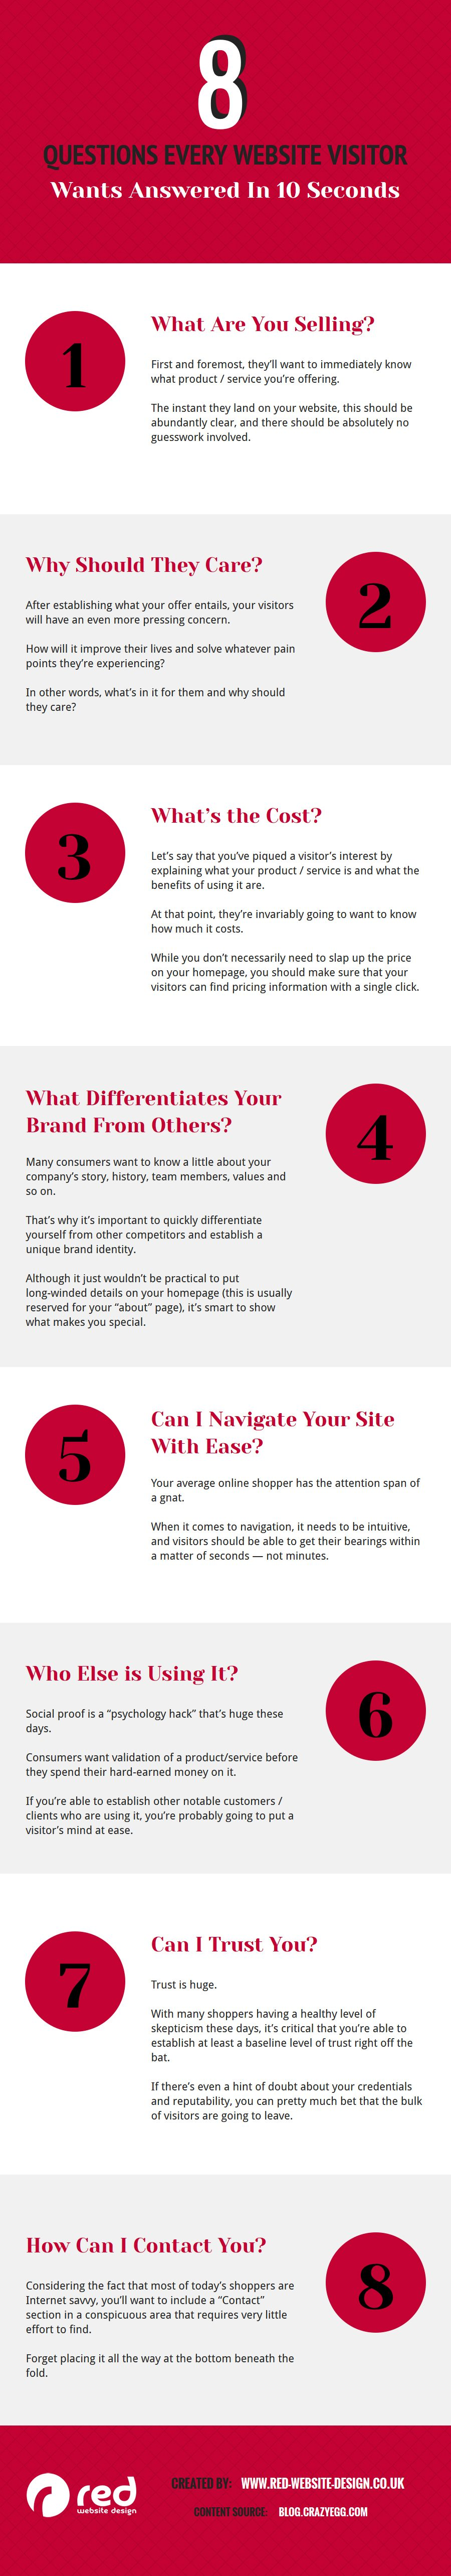 Web Design Basics: 8 Essential Questions Your Website Must Answer [Infographic]